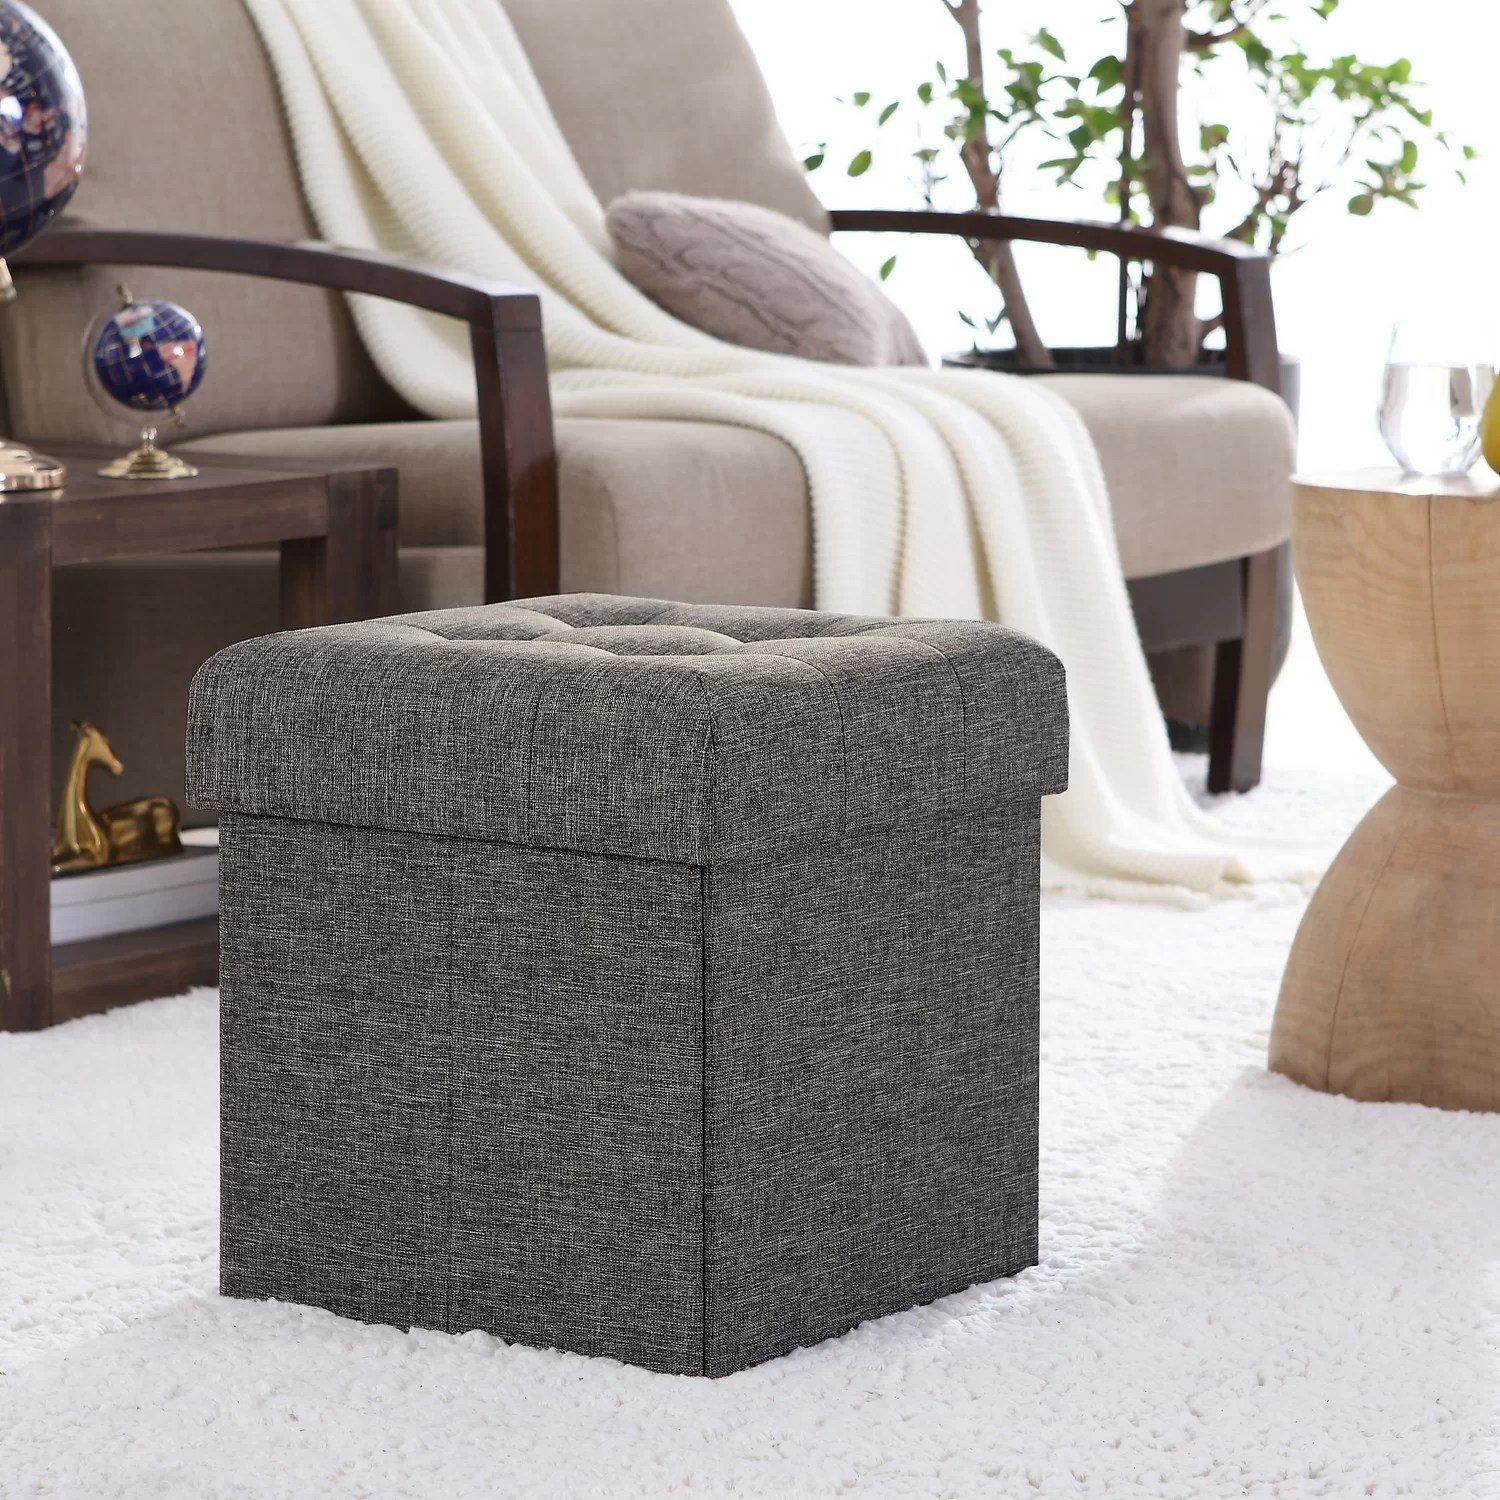 Winston Porter Lambertville Foldable Tufted Square Cube Foot Rest Storage Ottoman Reviews Wayfair